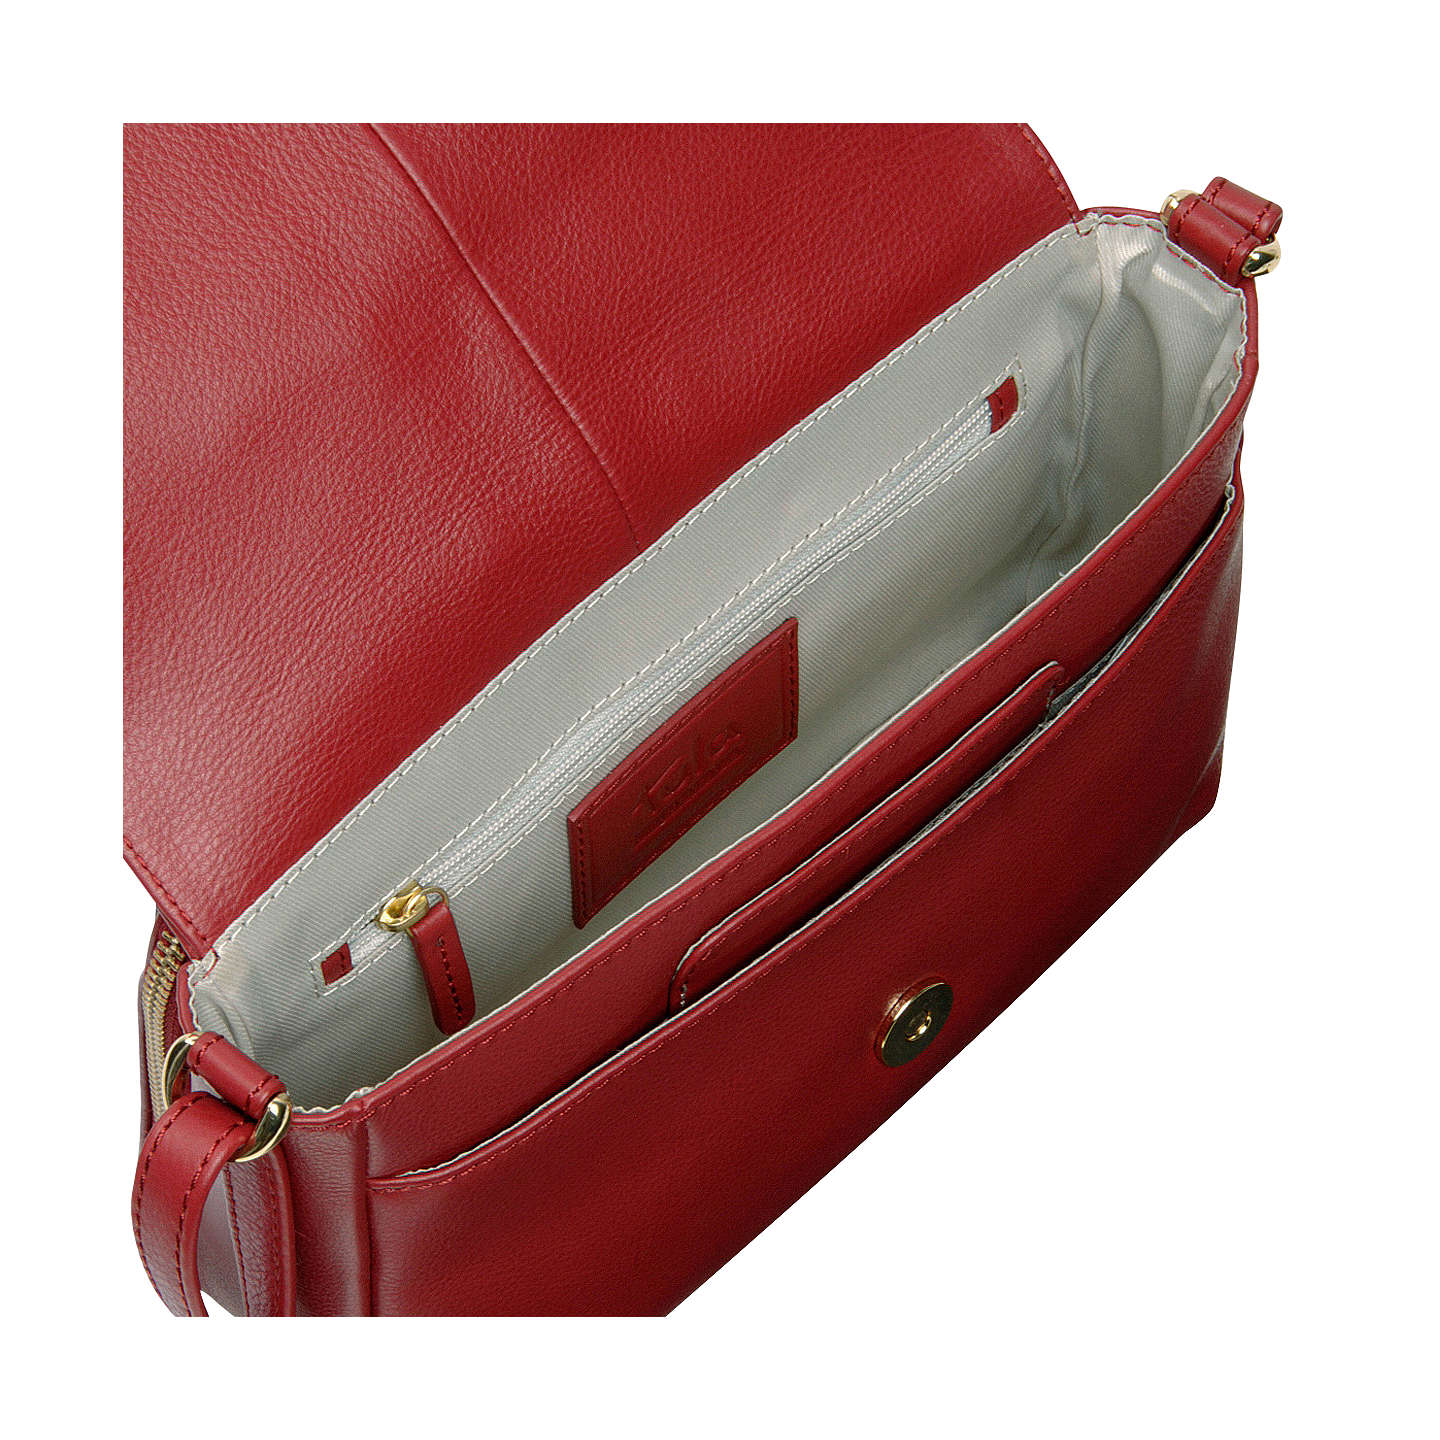 BuyTula Nappa Originals Leather Small Flapover Cross Body Bag, Scarlet Online at johnlewis.com